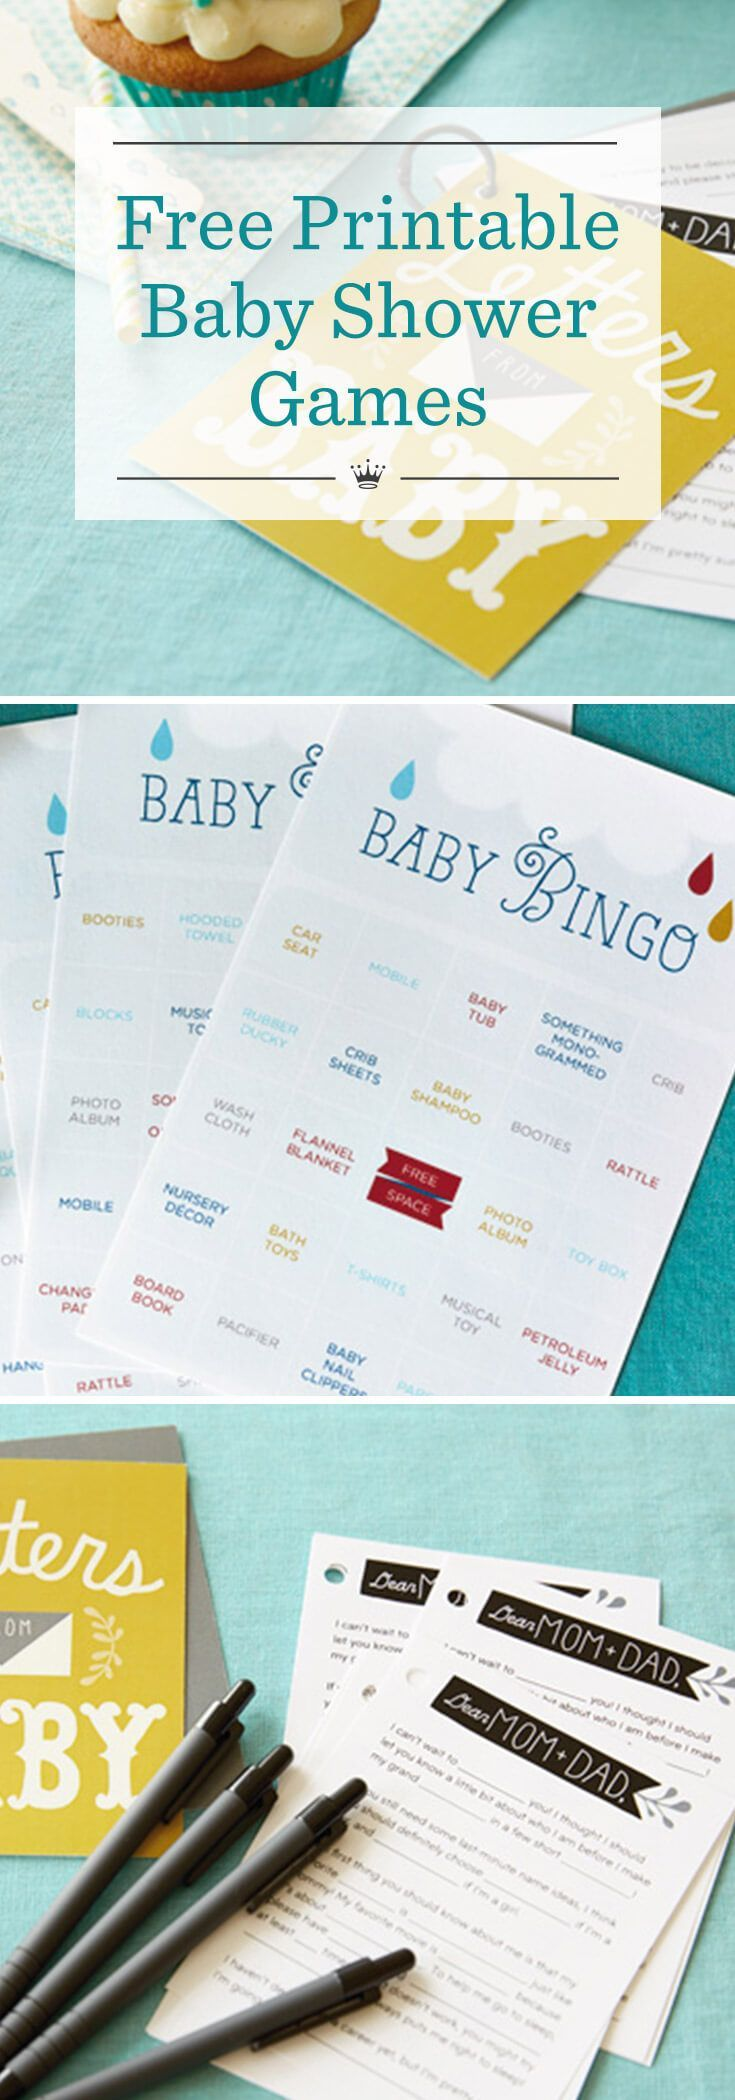 Free Printable Baby Shower Games Download